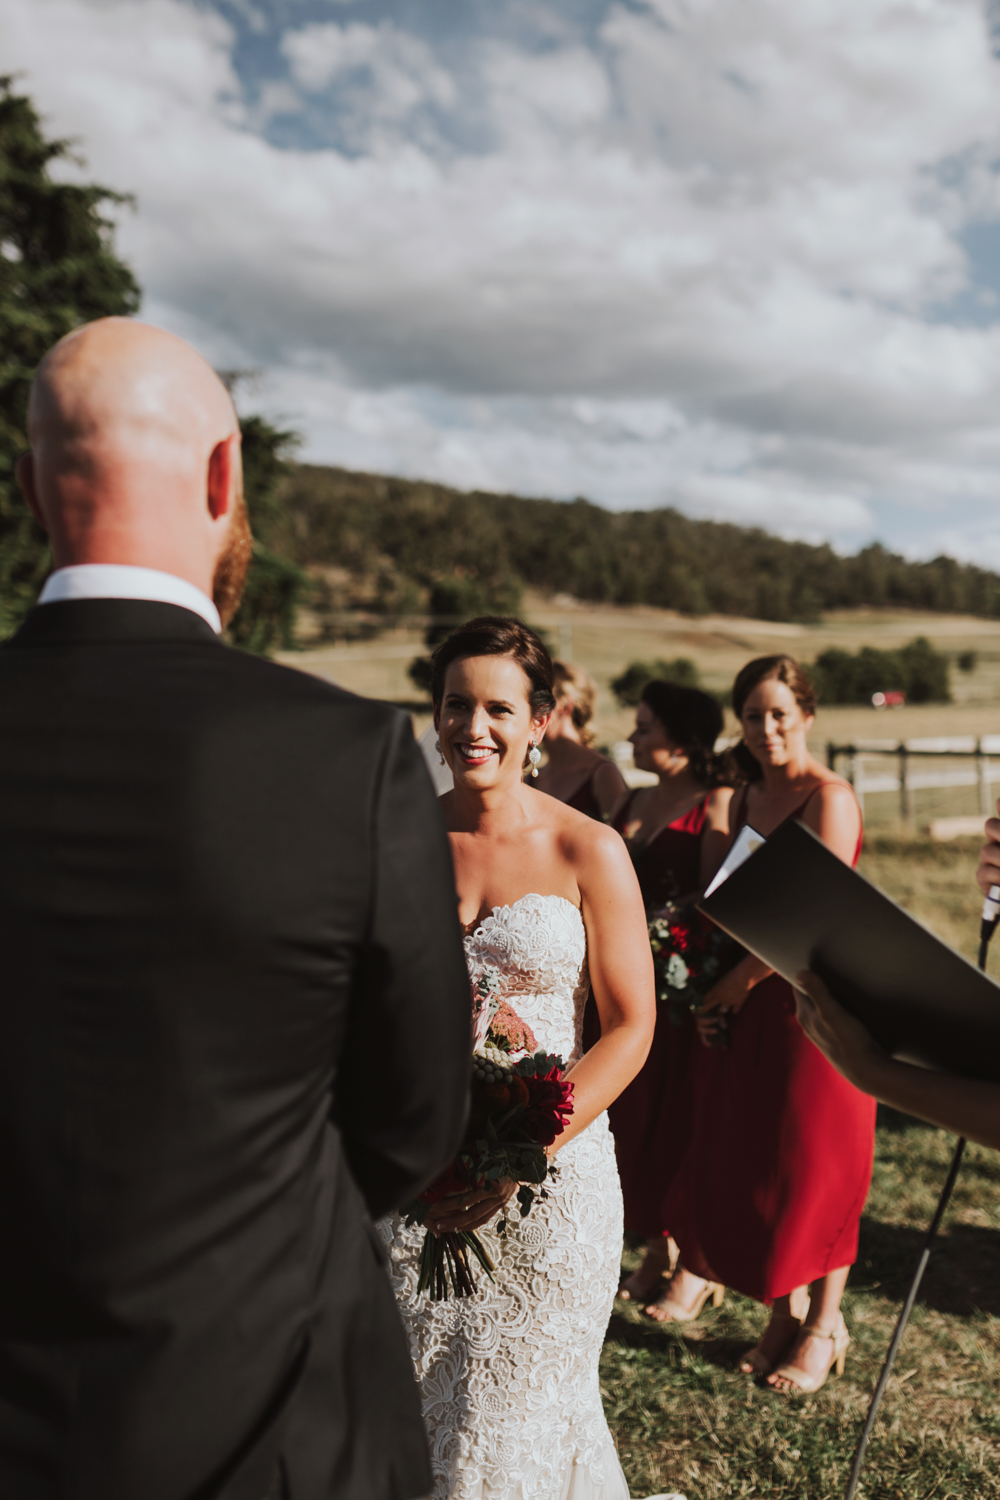 Bride smiles at her groom during wedding ceremony in Tasmania.